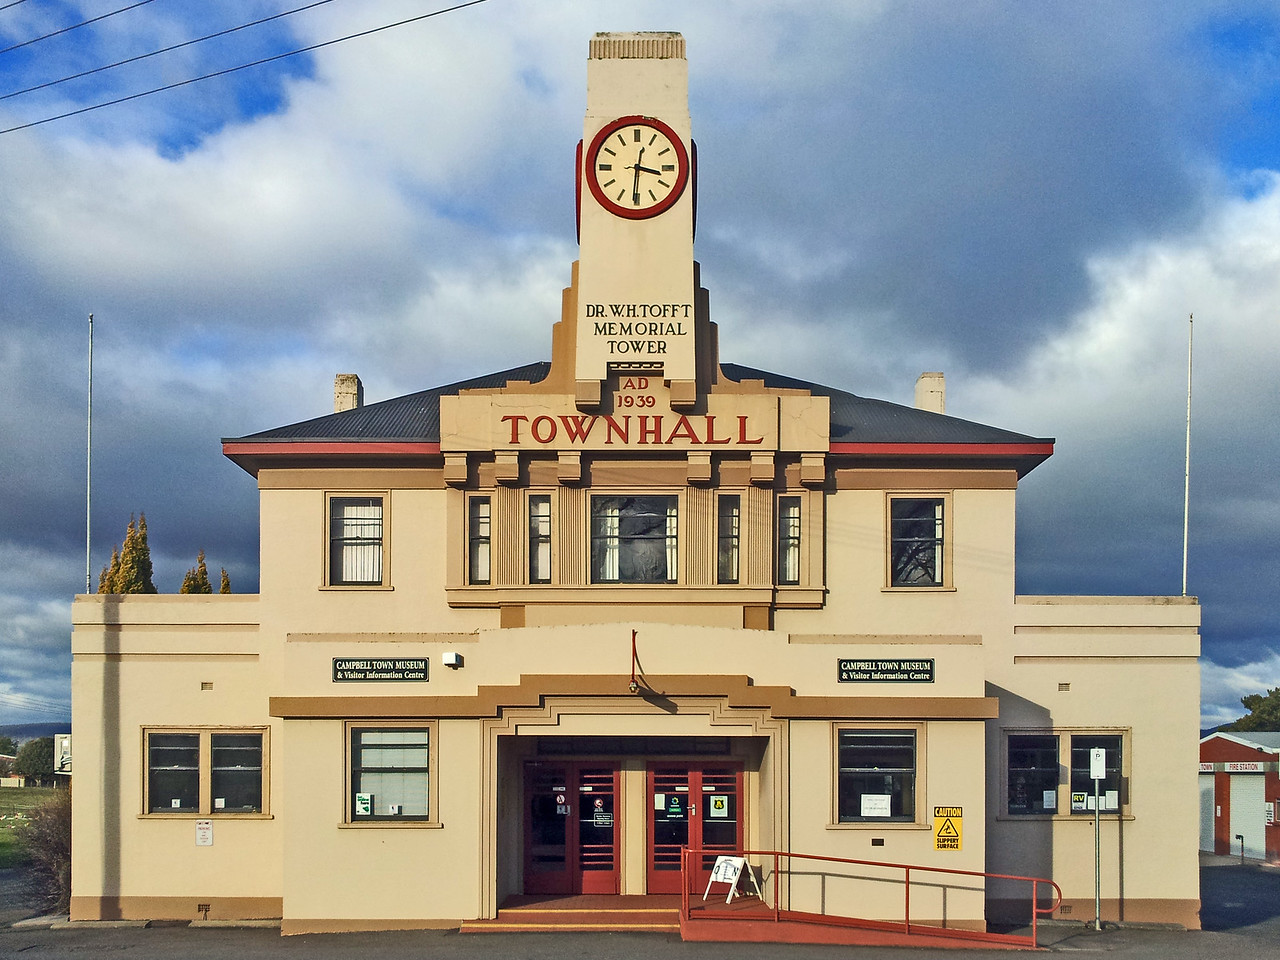 27 July 2015: Town Hall and memorial clocktower, Campbell Town, Tasmania.